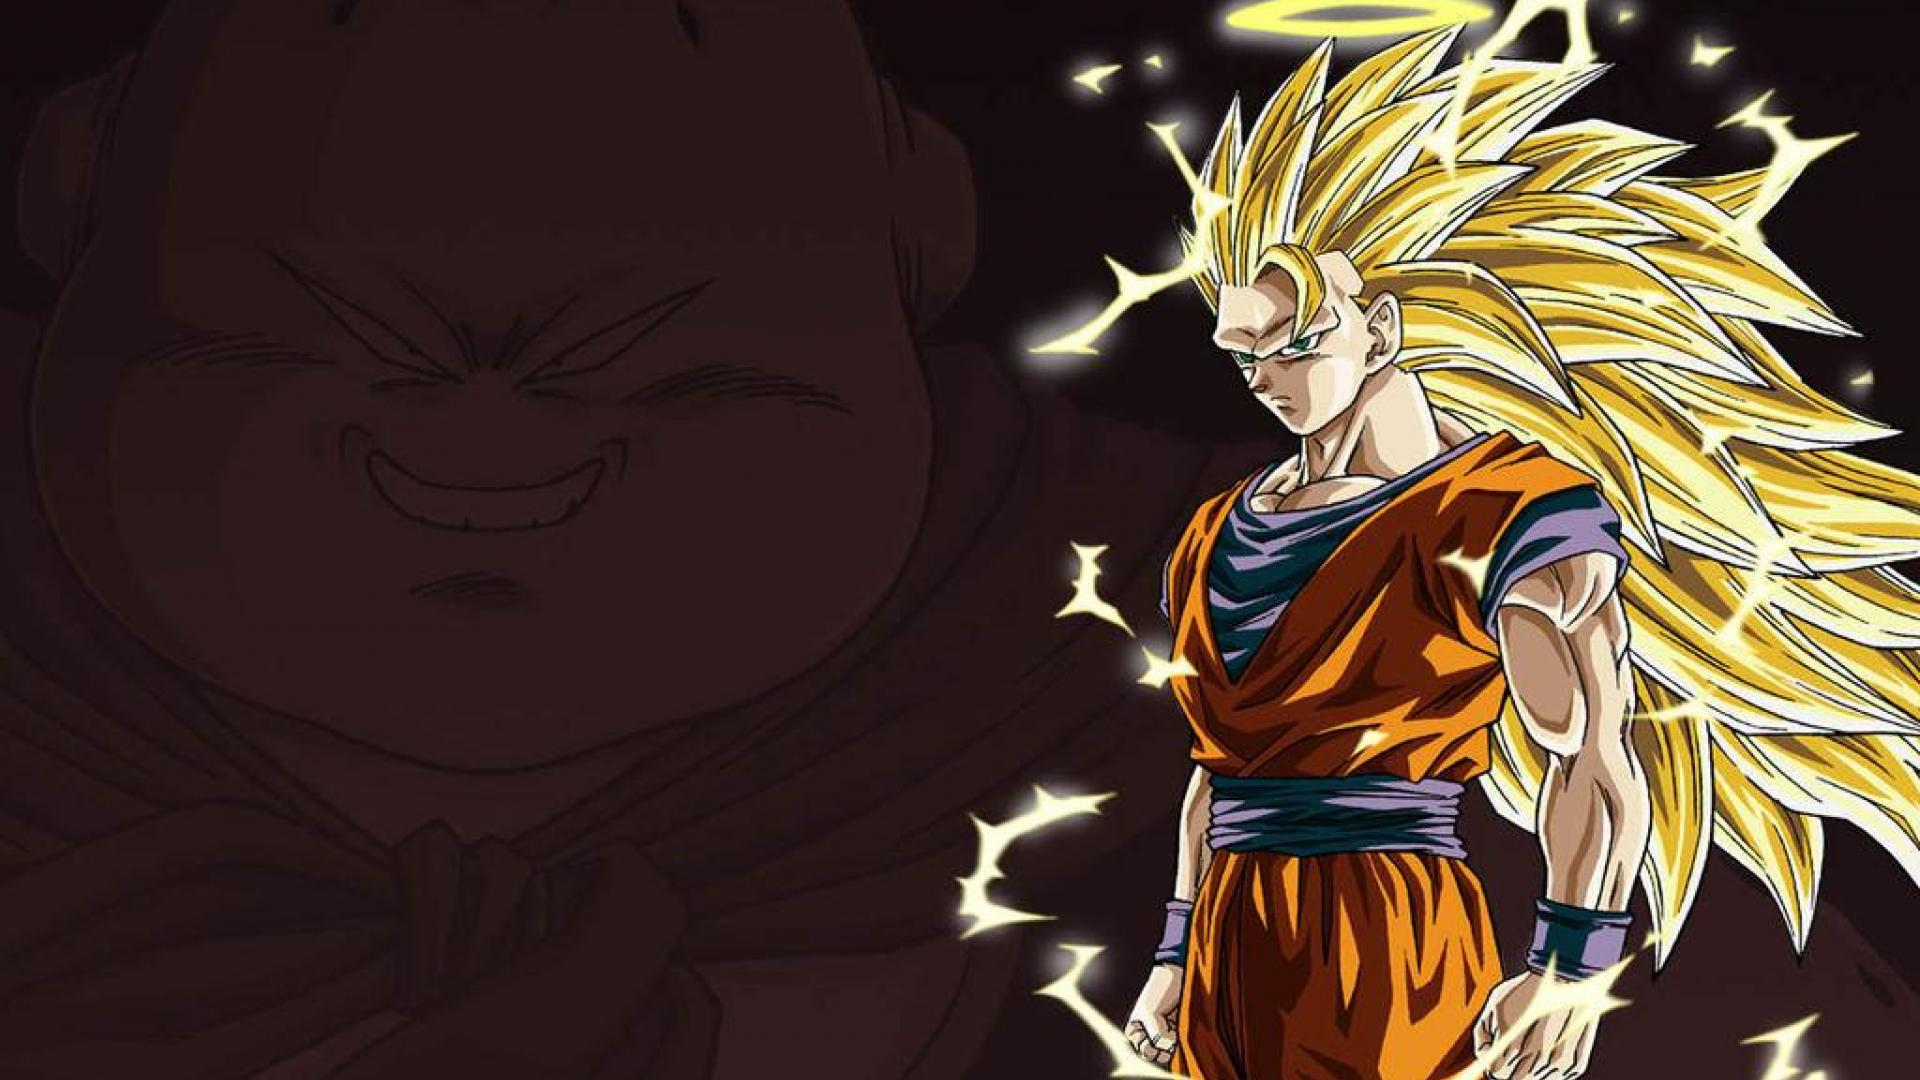 Wallpaper dragon ball z hd gratuit t l charger sur ngn mag for Super fond ecran